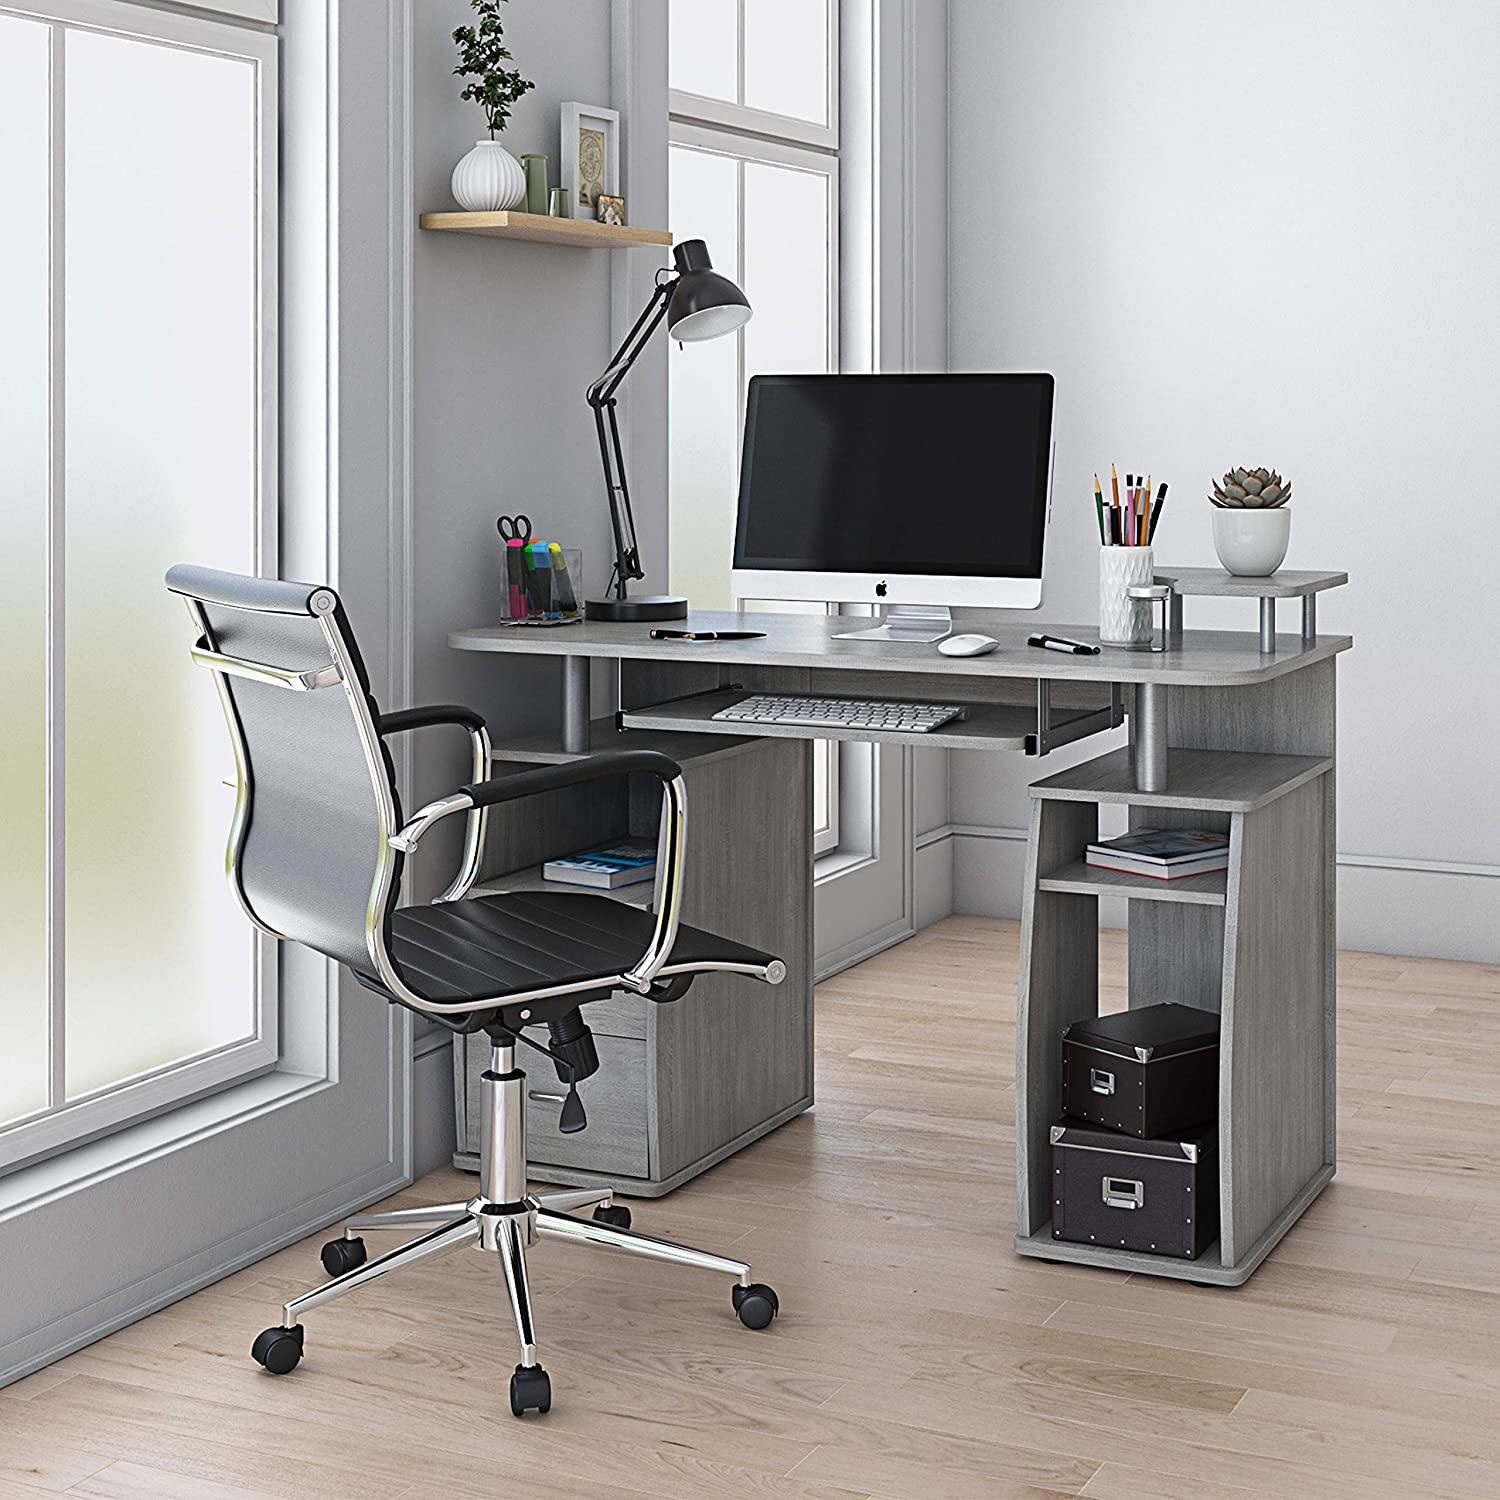 Techni Mobili Floating Modern Max 86% OFF Office Complete Wo Computer Desk 4 years warranty